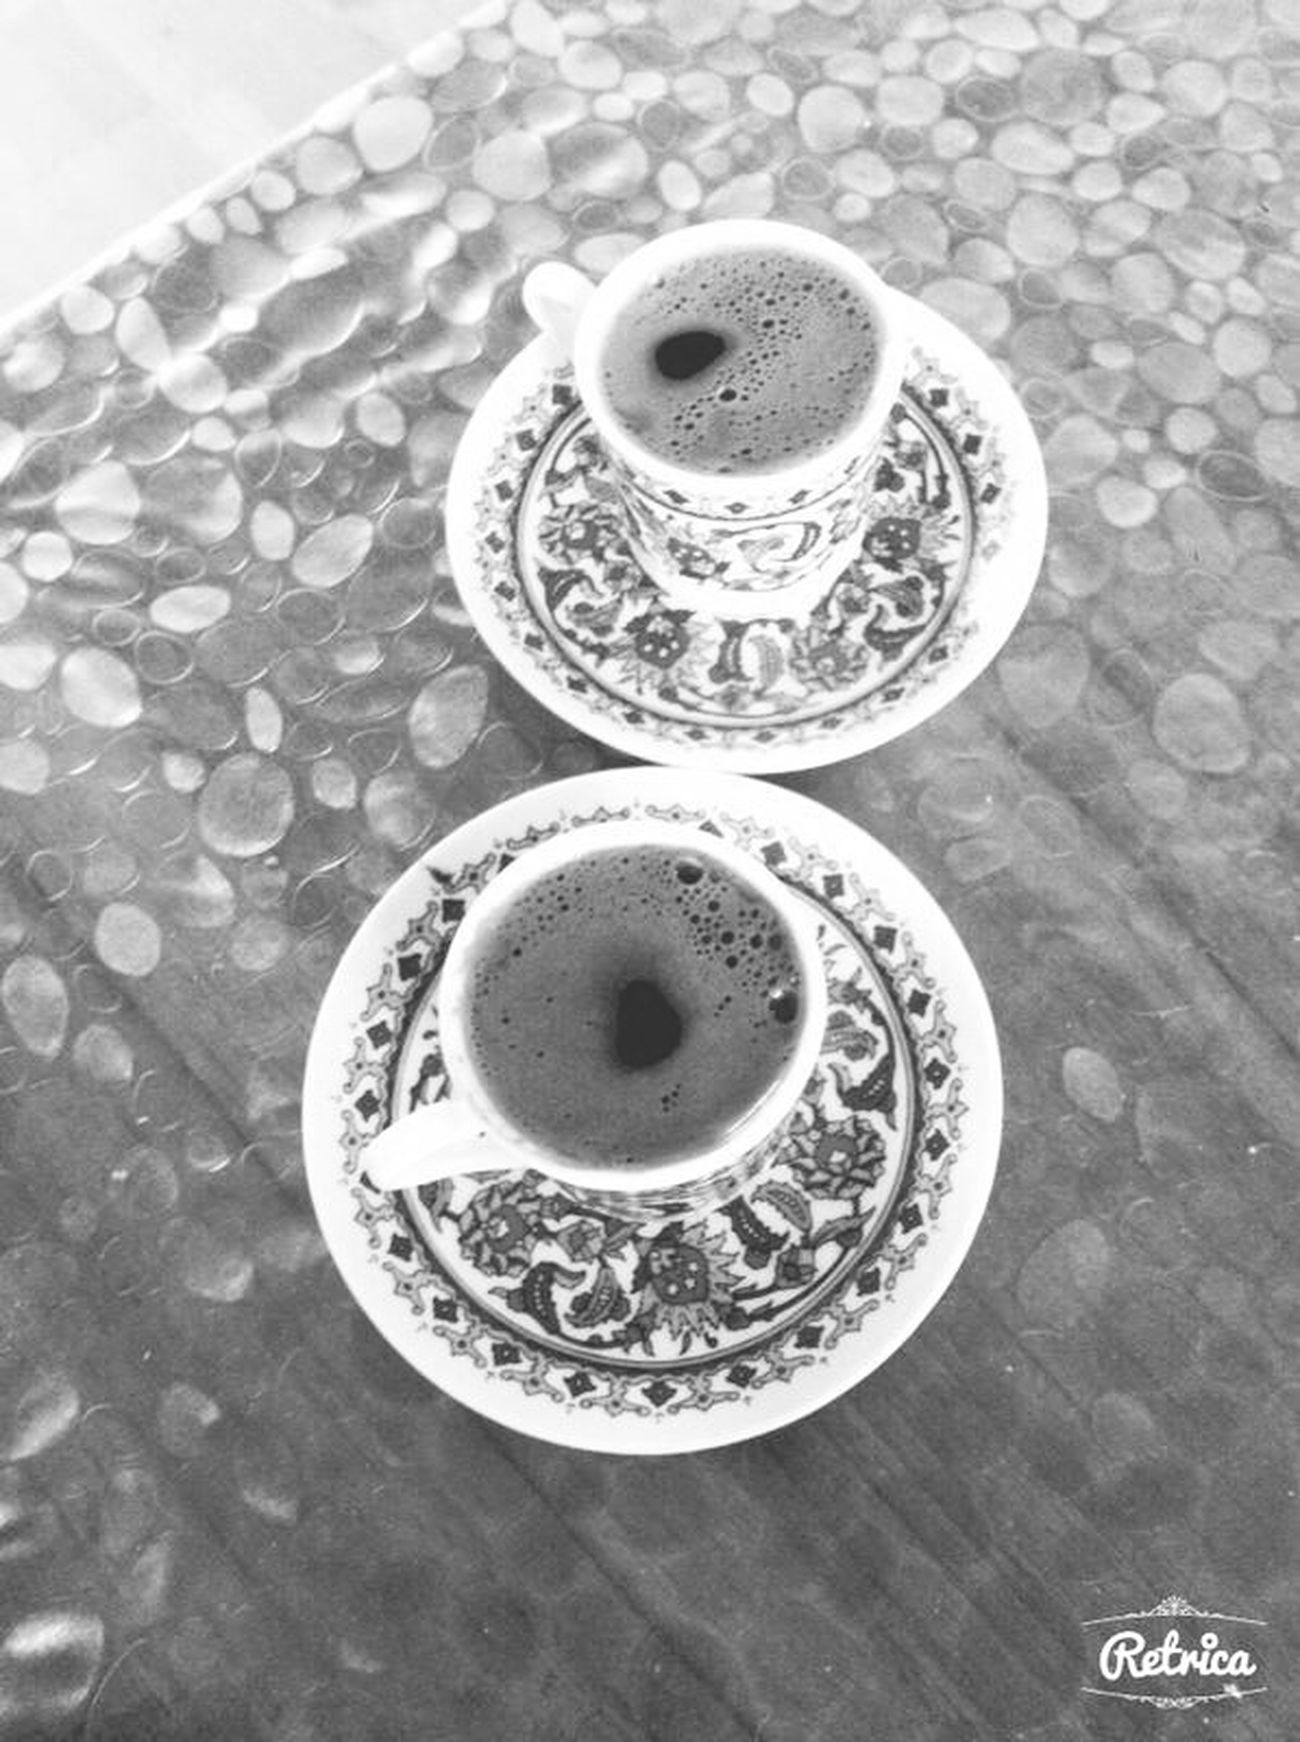 Coffee turkish coffee Popular Taking Photos Stree Photography